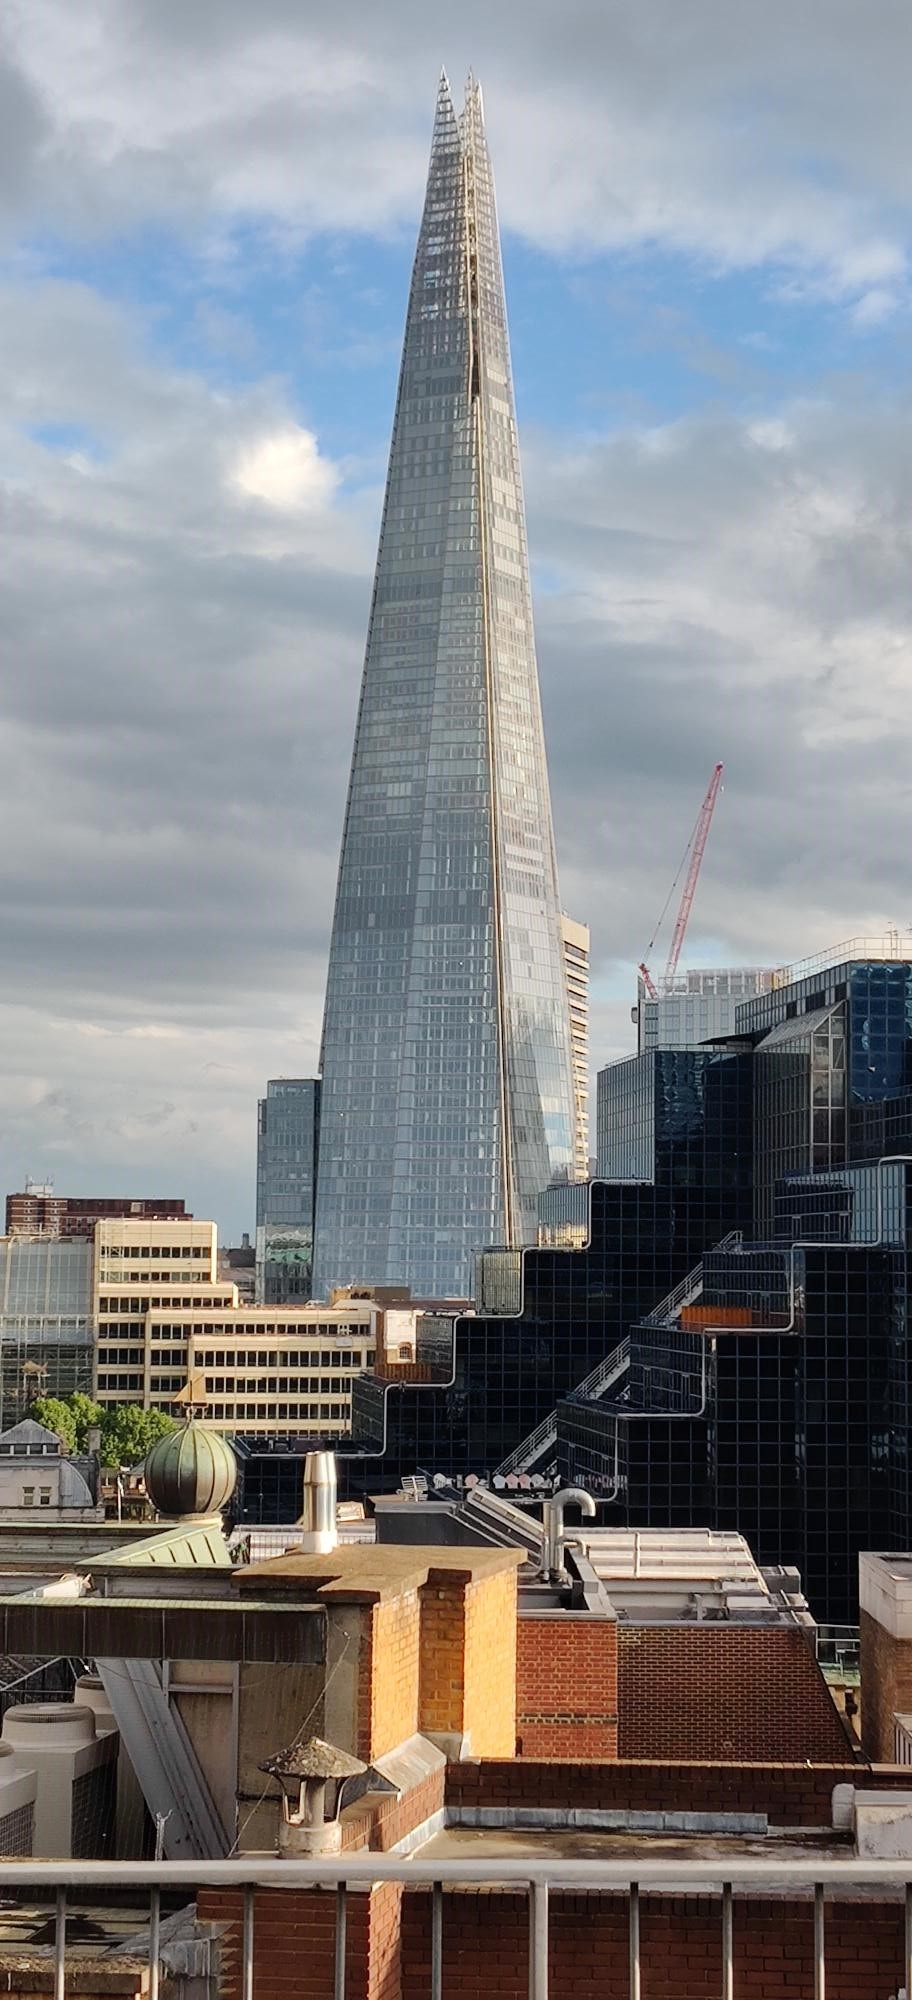 View from Penthouse - The Shard